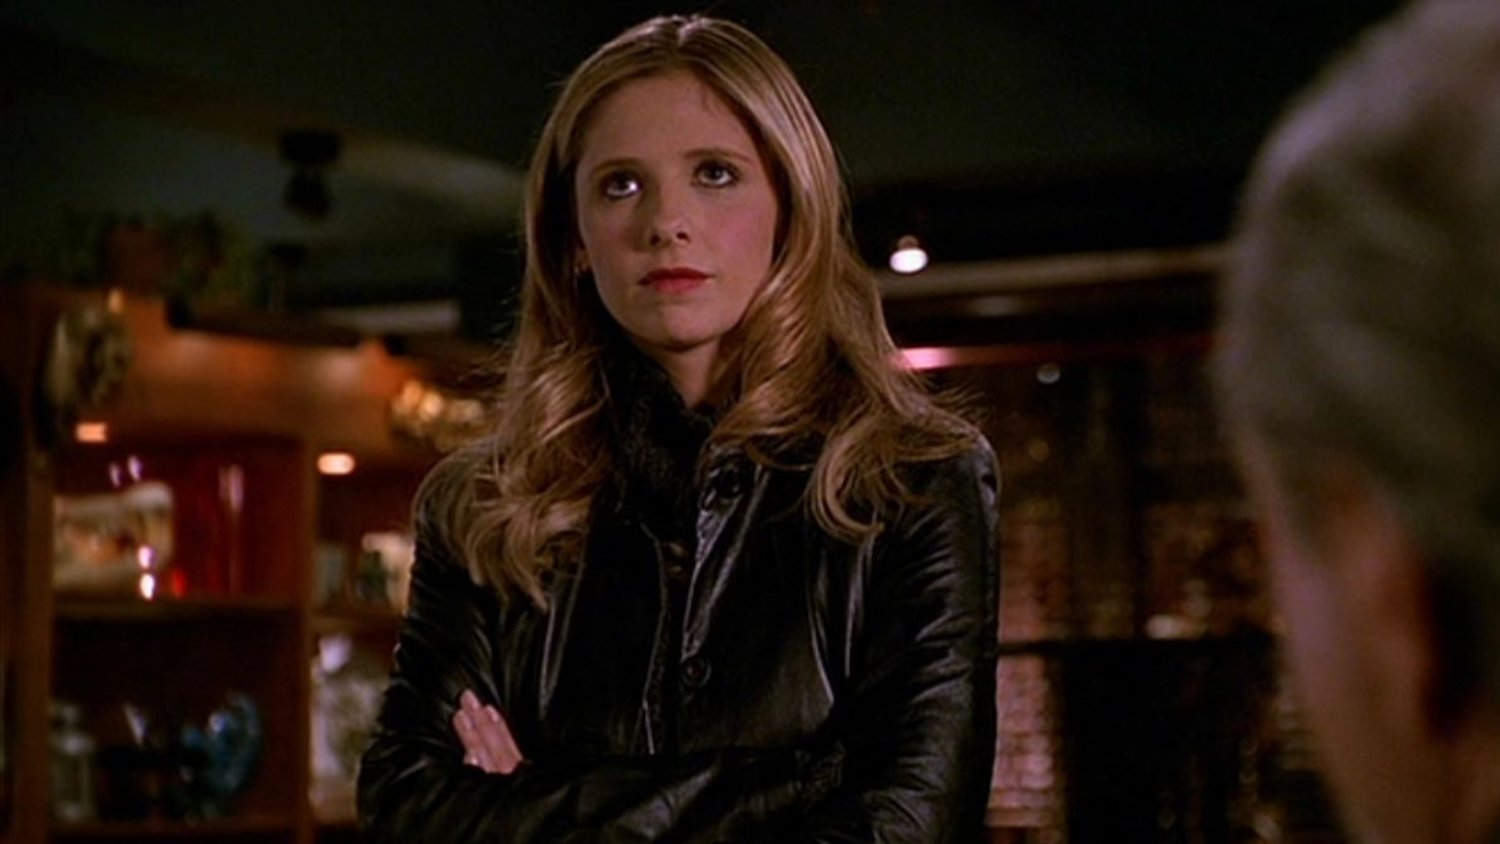 Joss Whedon Reveals What He's Most Proud of About BUFFY THE VAMPIRE SLAYER